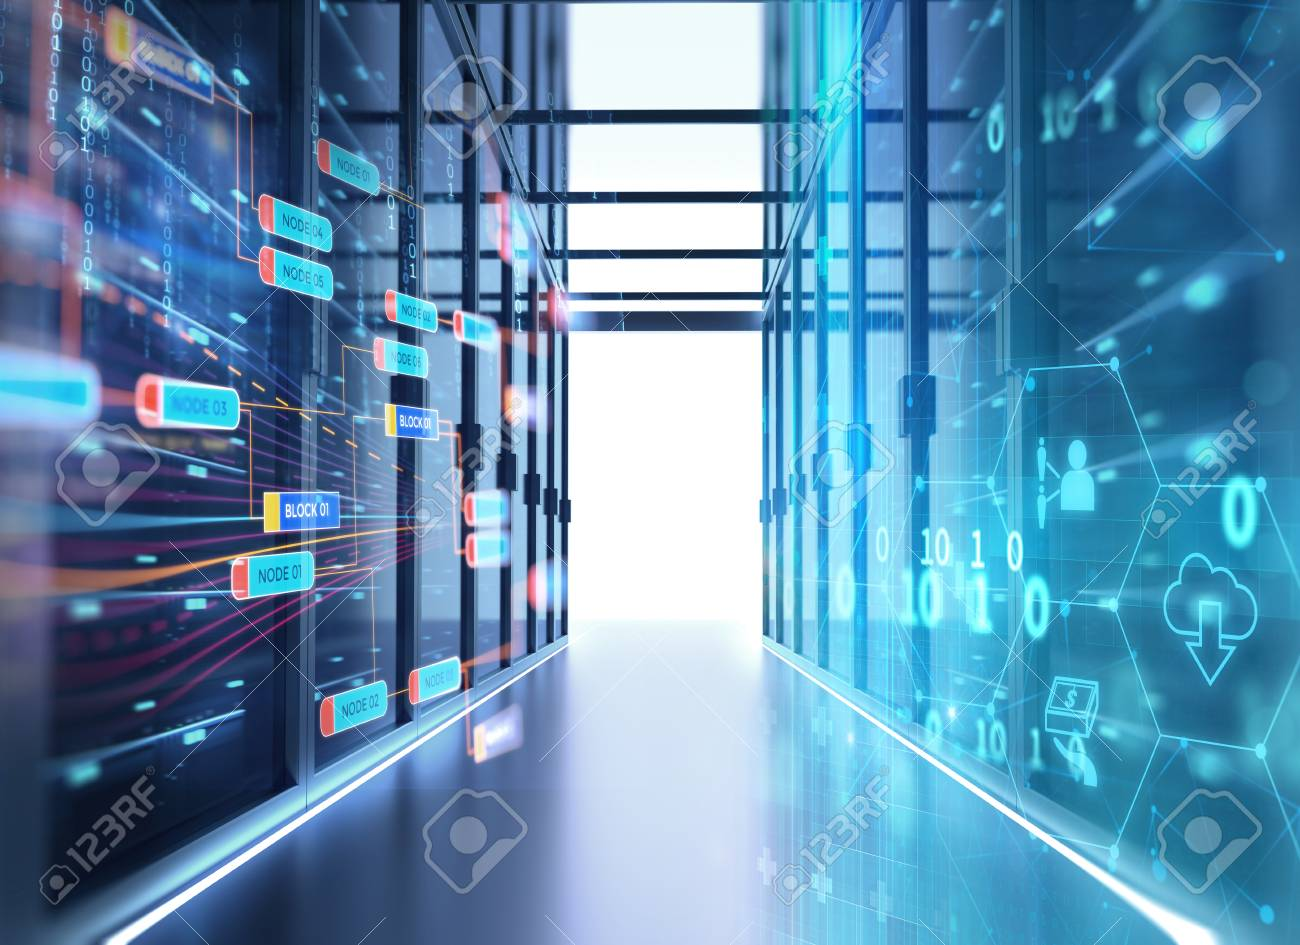 3D illustration of server room in data center full of telecommunication equipment,concept of big data storage and cloud computing technology. - 97031622